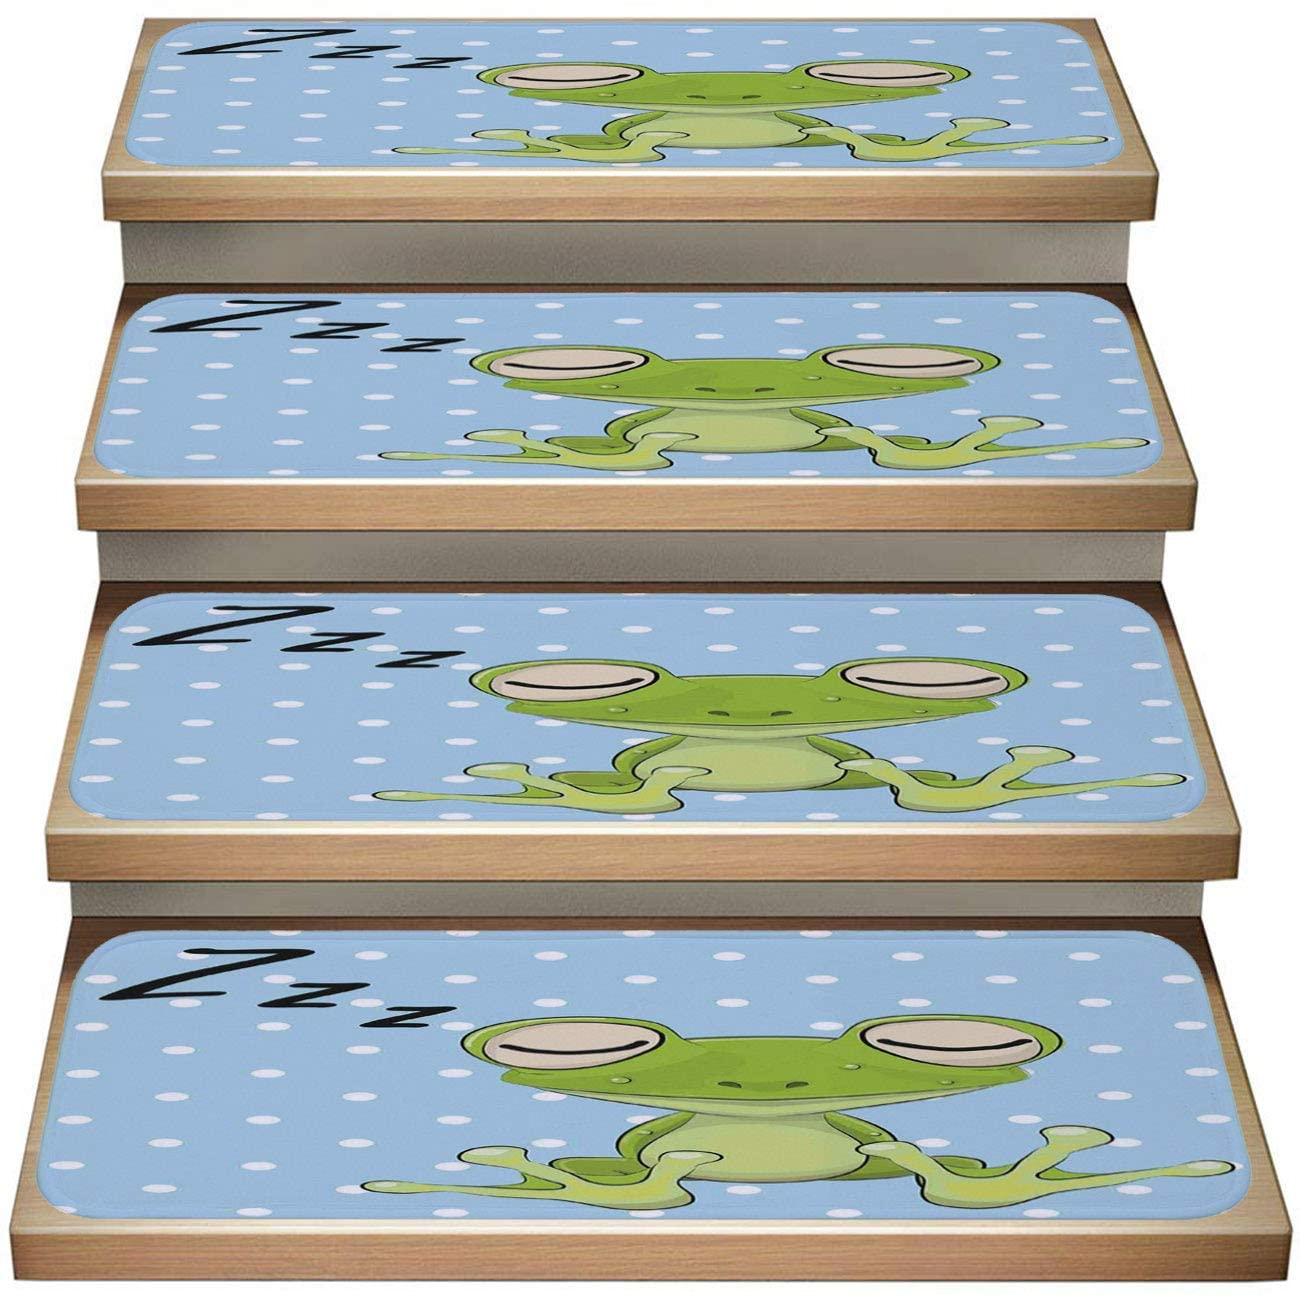 Cartoon 7-Pack Non-Slip Stair Skid Mats,Cartoon Sleeping Prince Frog in A Cap Polka Dots Background Cute Animal World Kids Green Blue,Soft Stair Mat Rotection Kids, Elders, and Dogs Safety